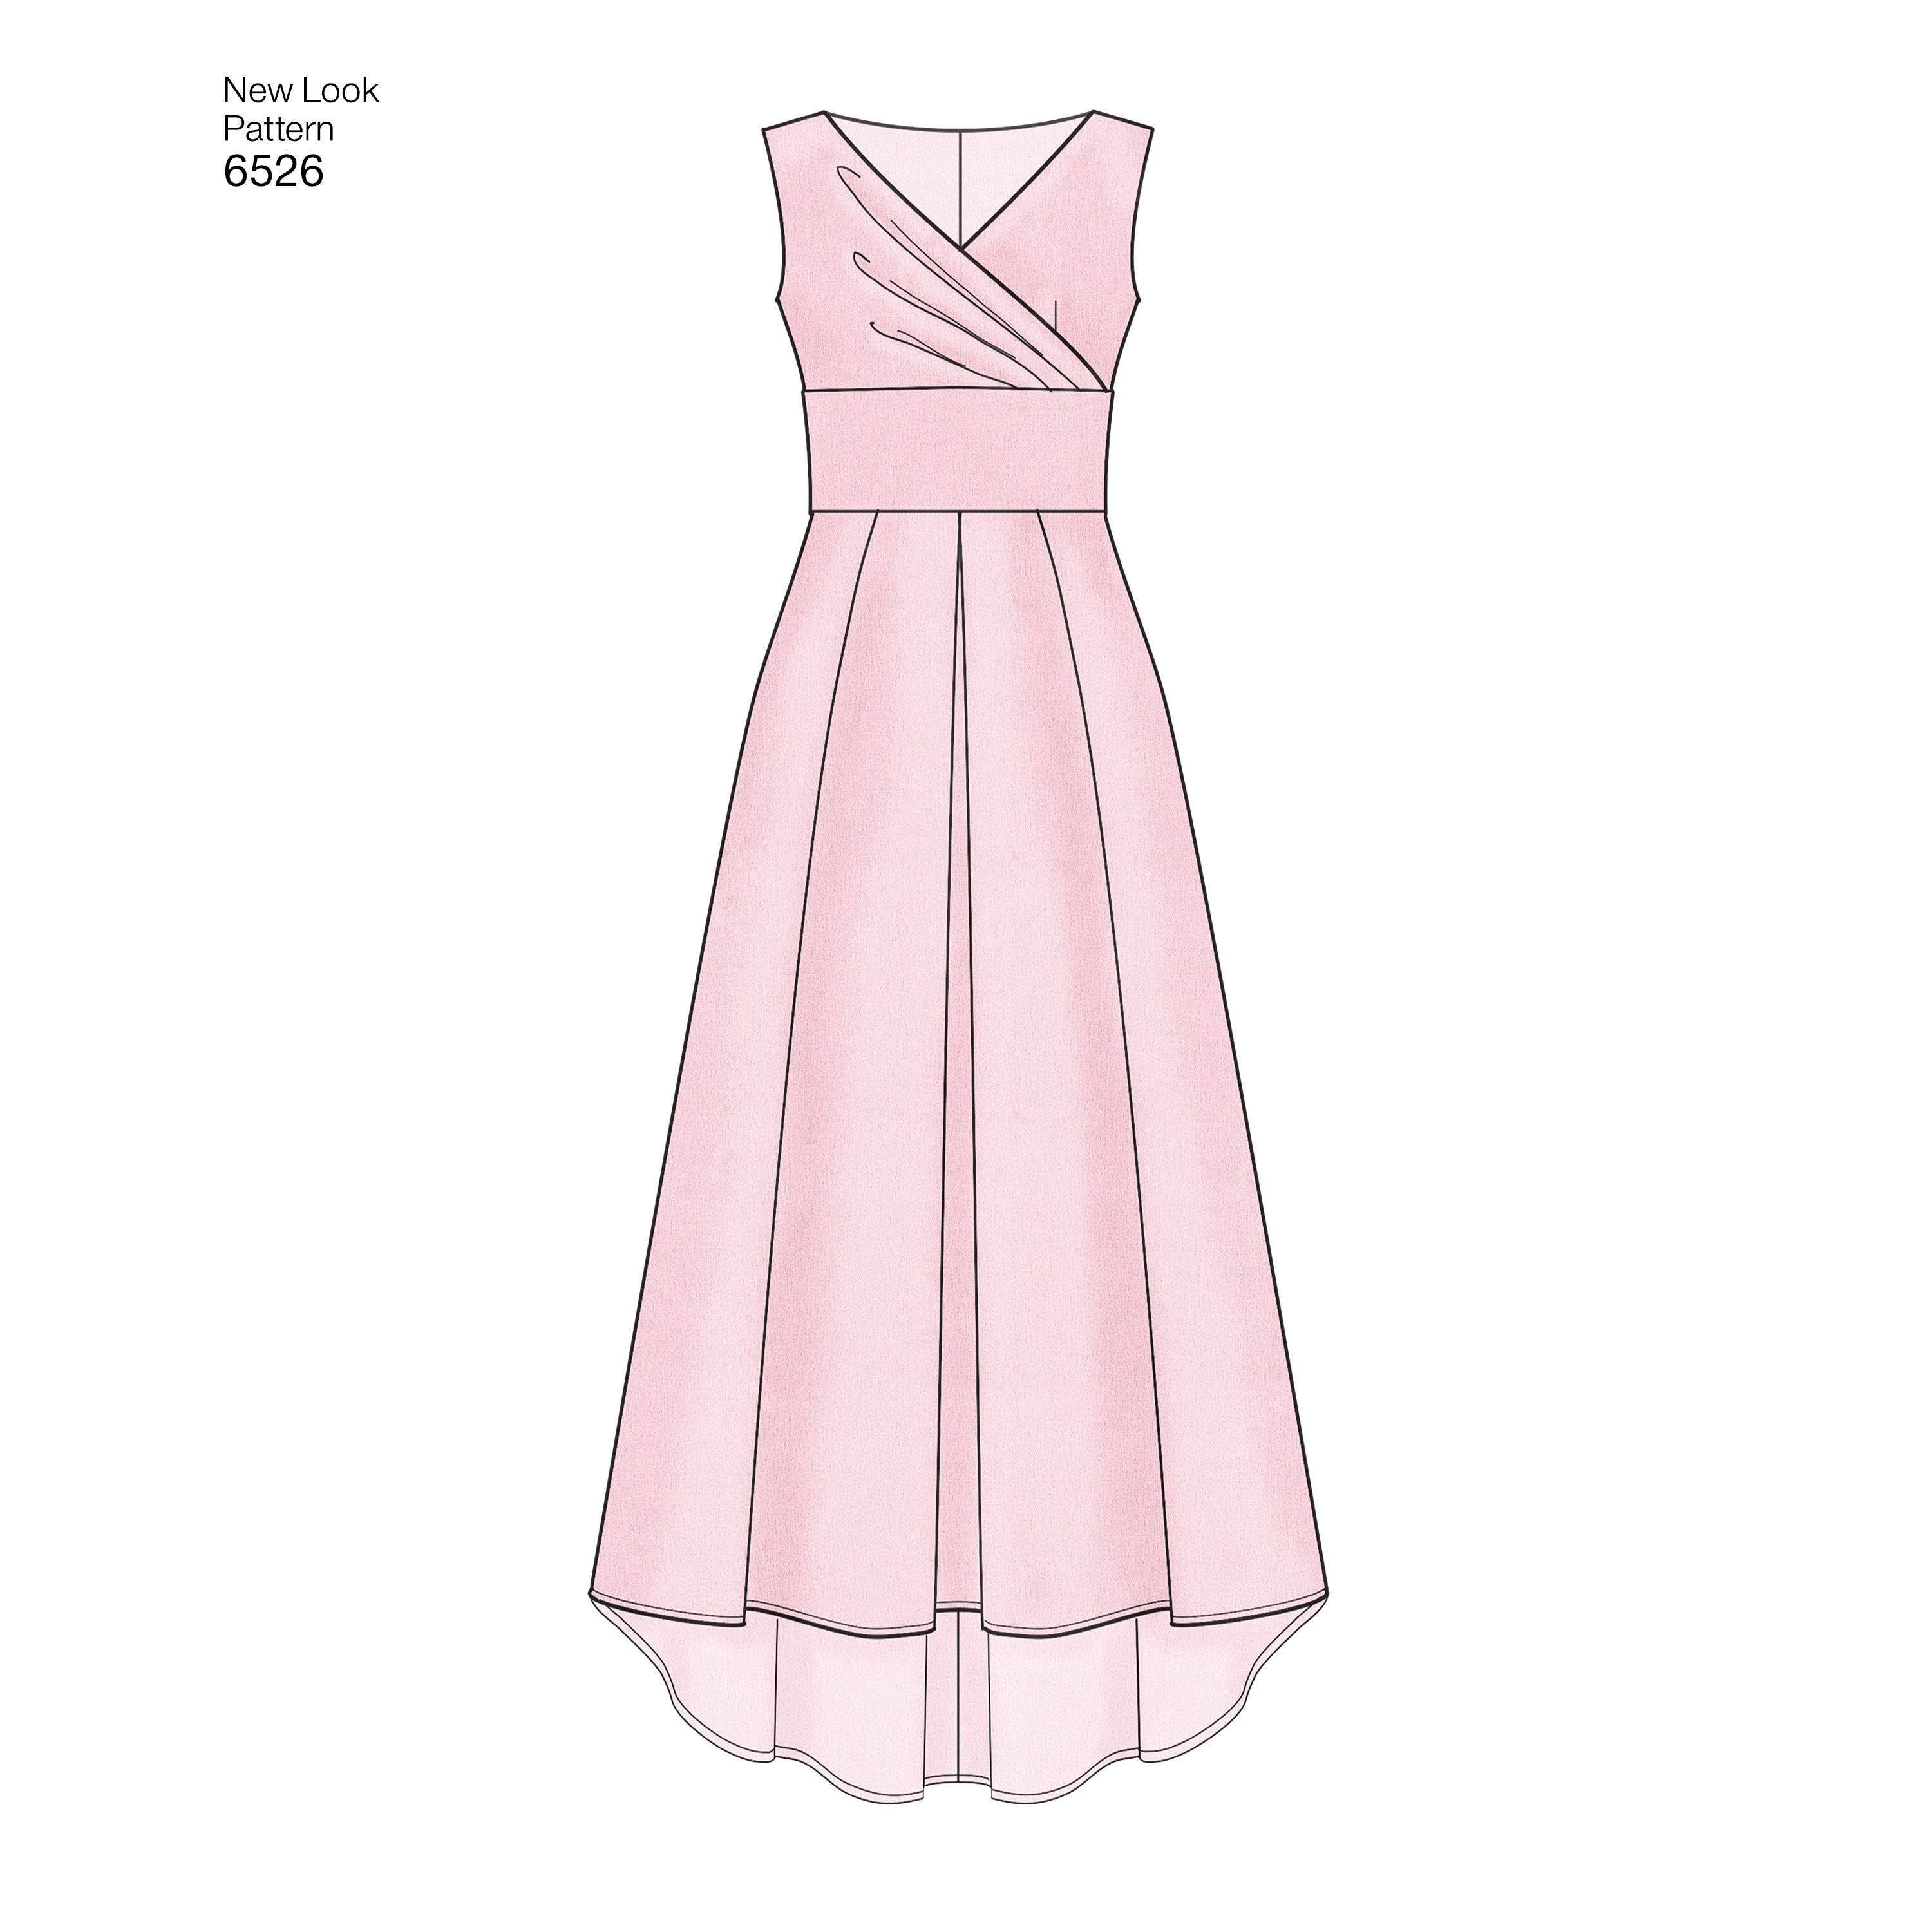 NL6526 Women's Dress Pattern